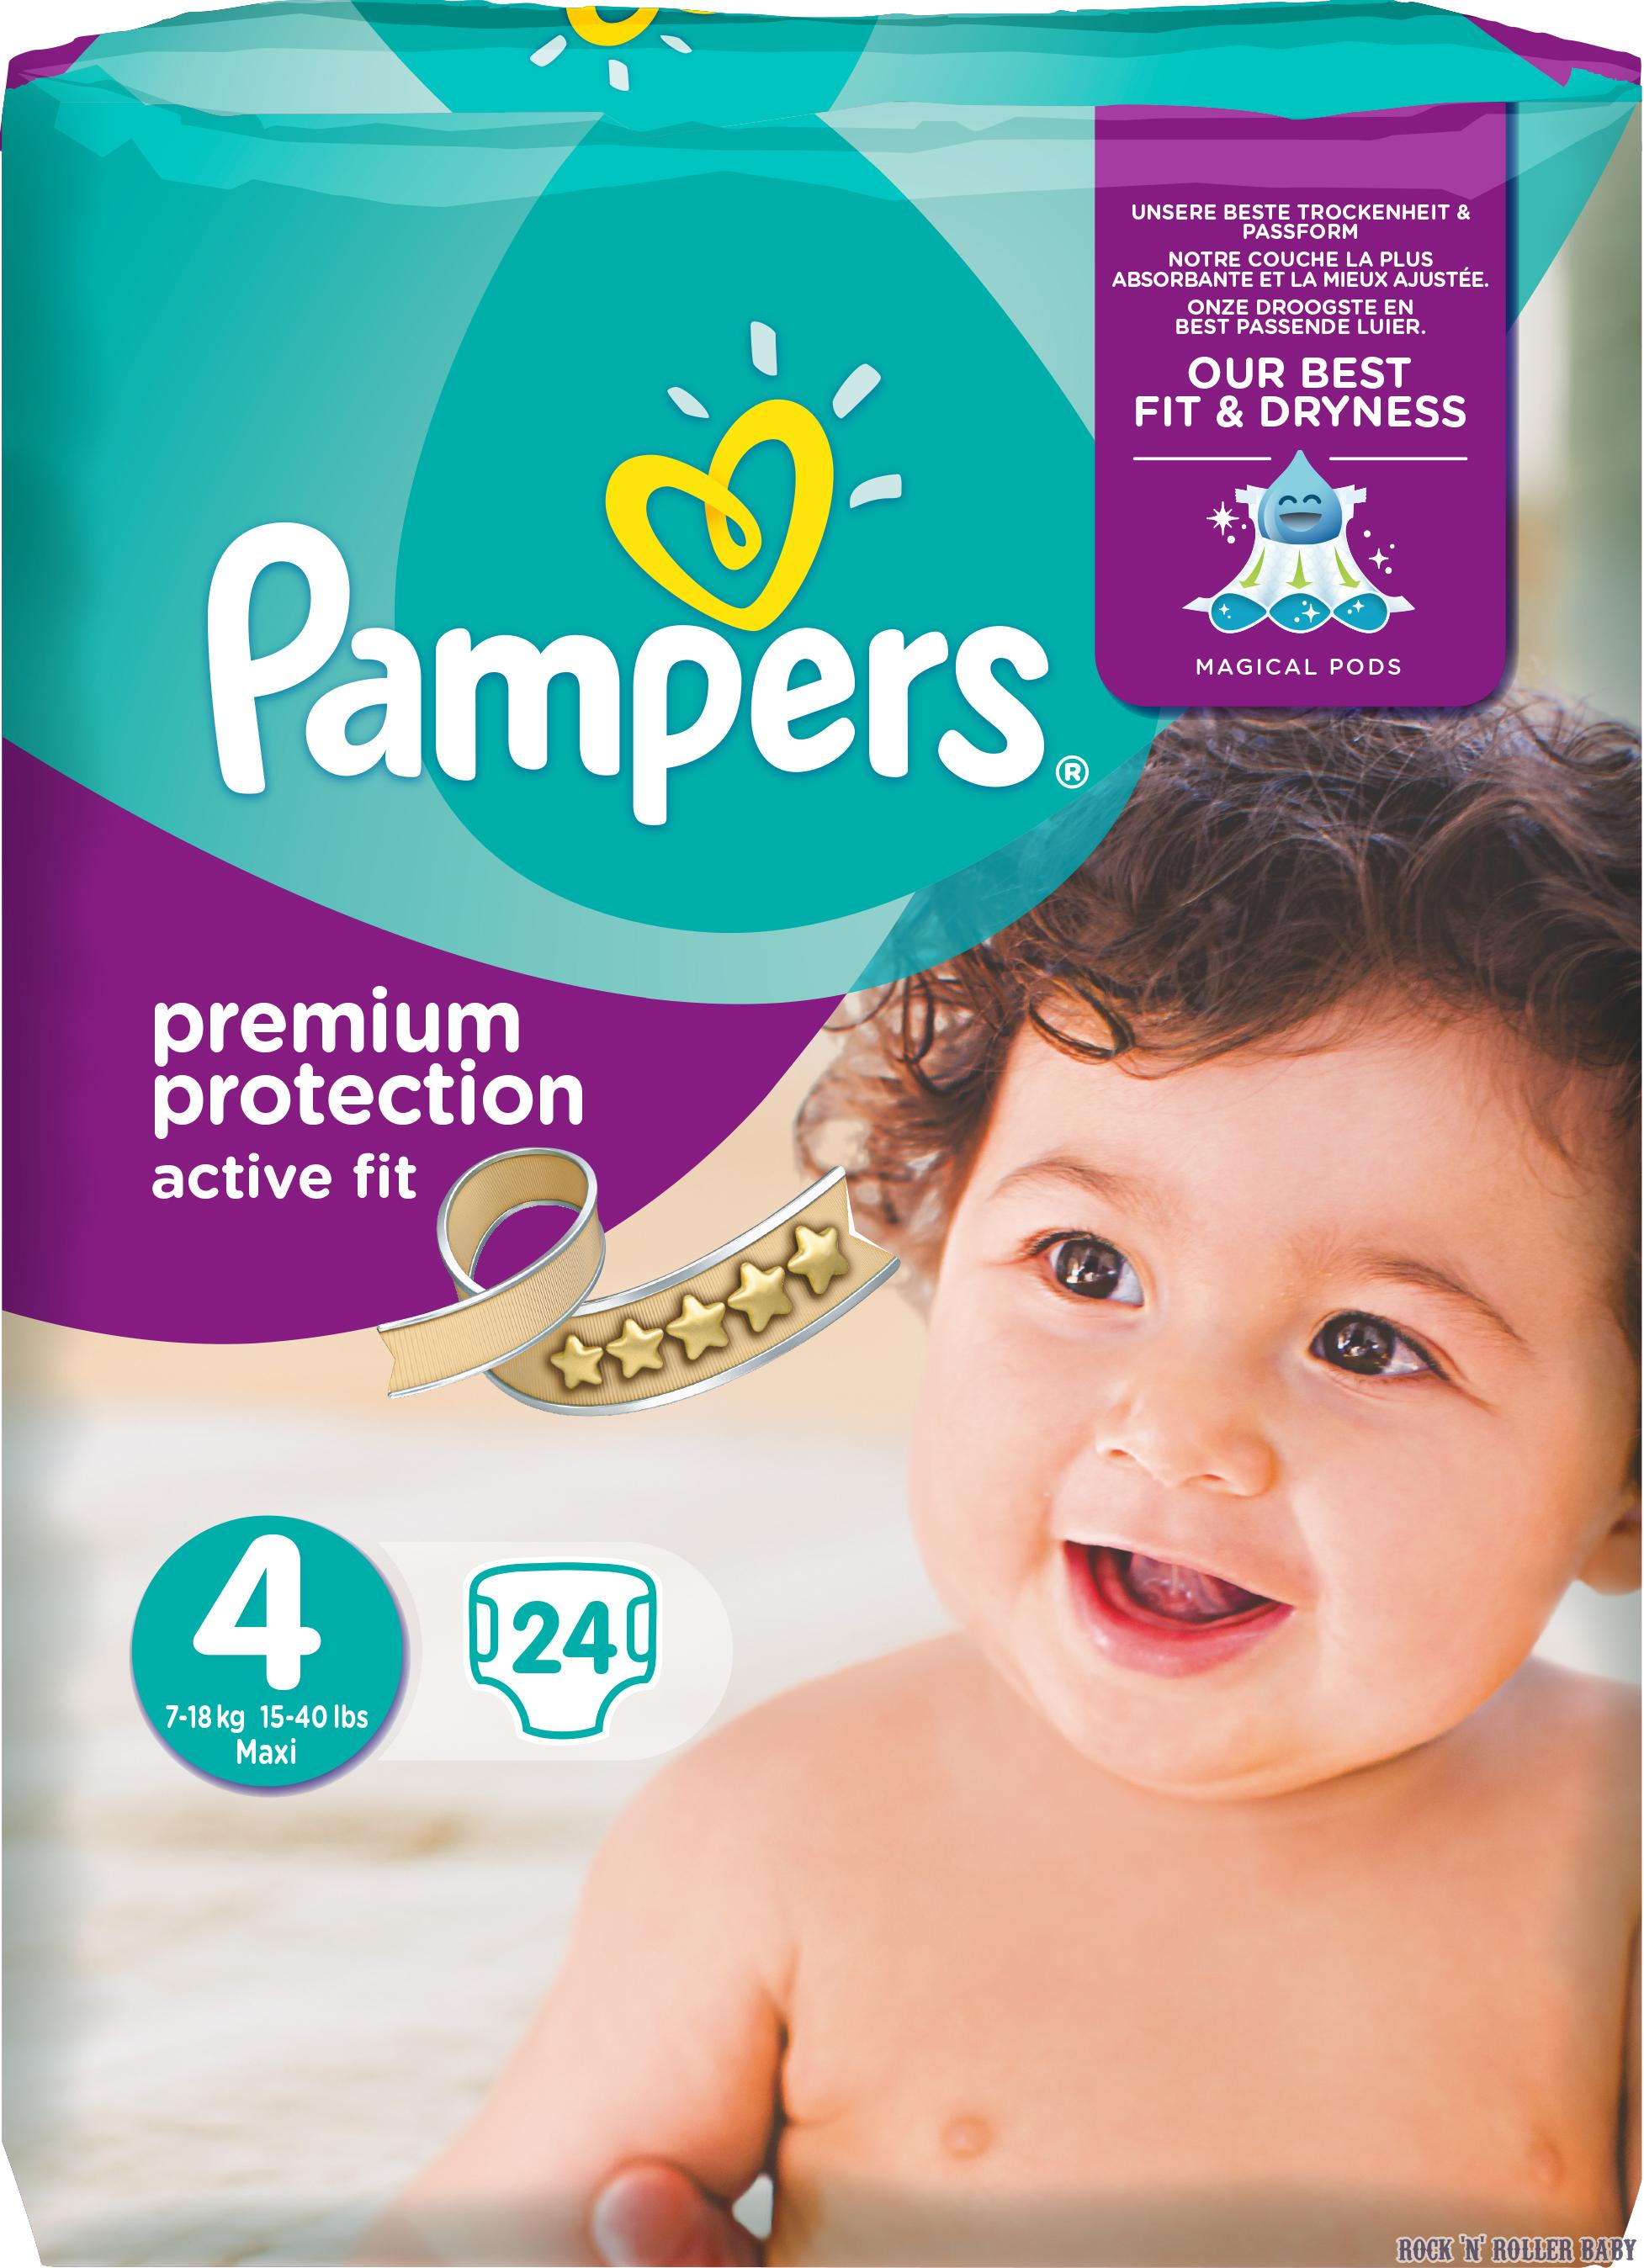 get your babygrooves on with pampers premium protection active fit rocknrollerbaby. Black Bedroom Furniture Sets. Home Design Ideas